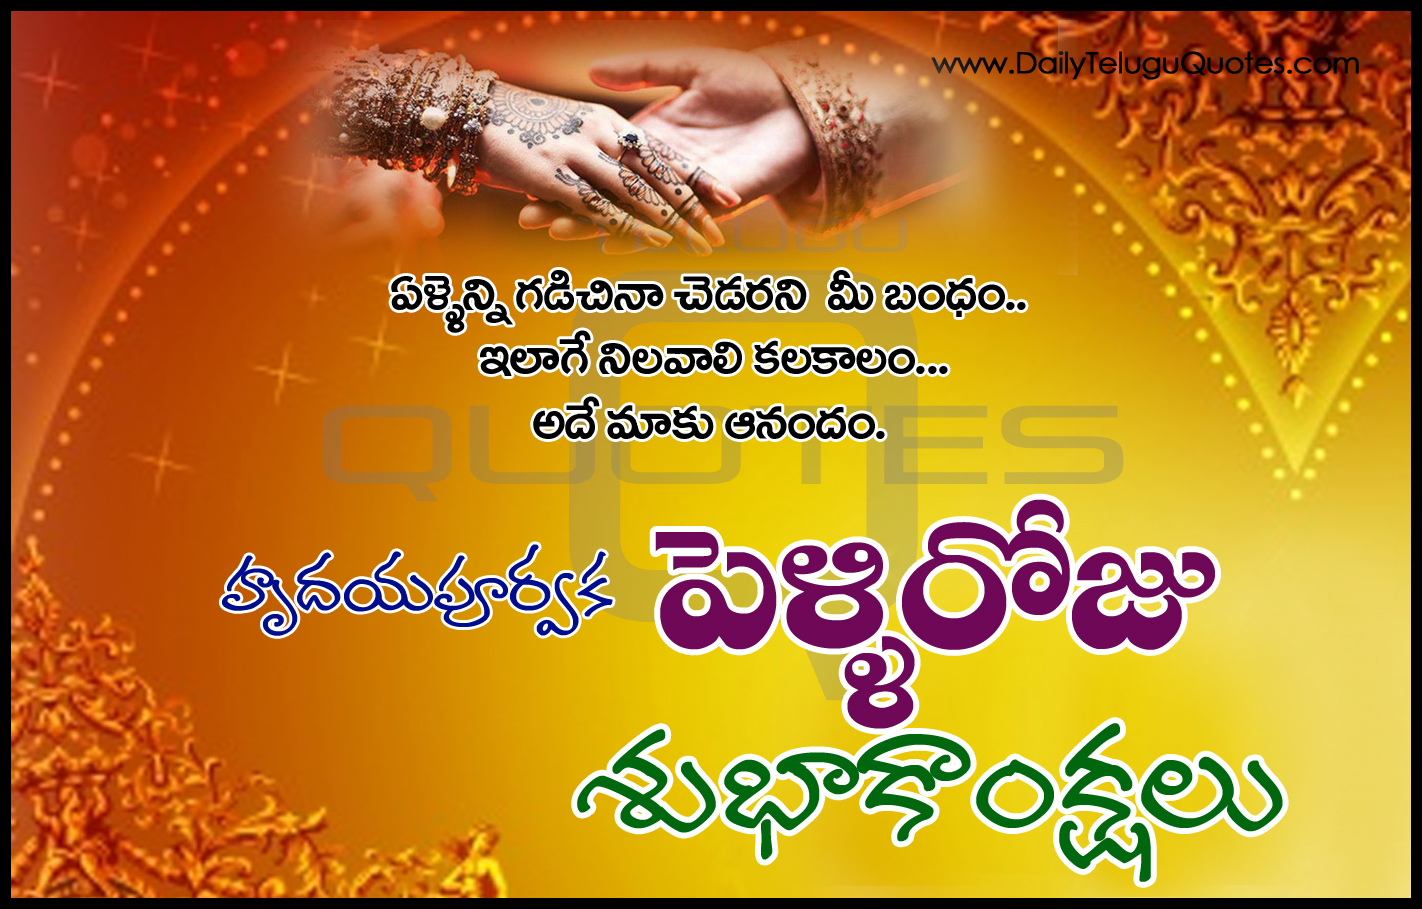 Best Wishes Happy Marriage Day Wishes In Telugu Quotes Hd Pictures